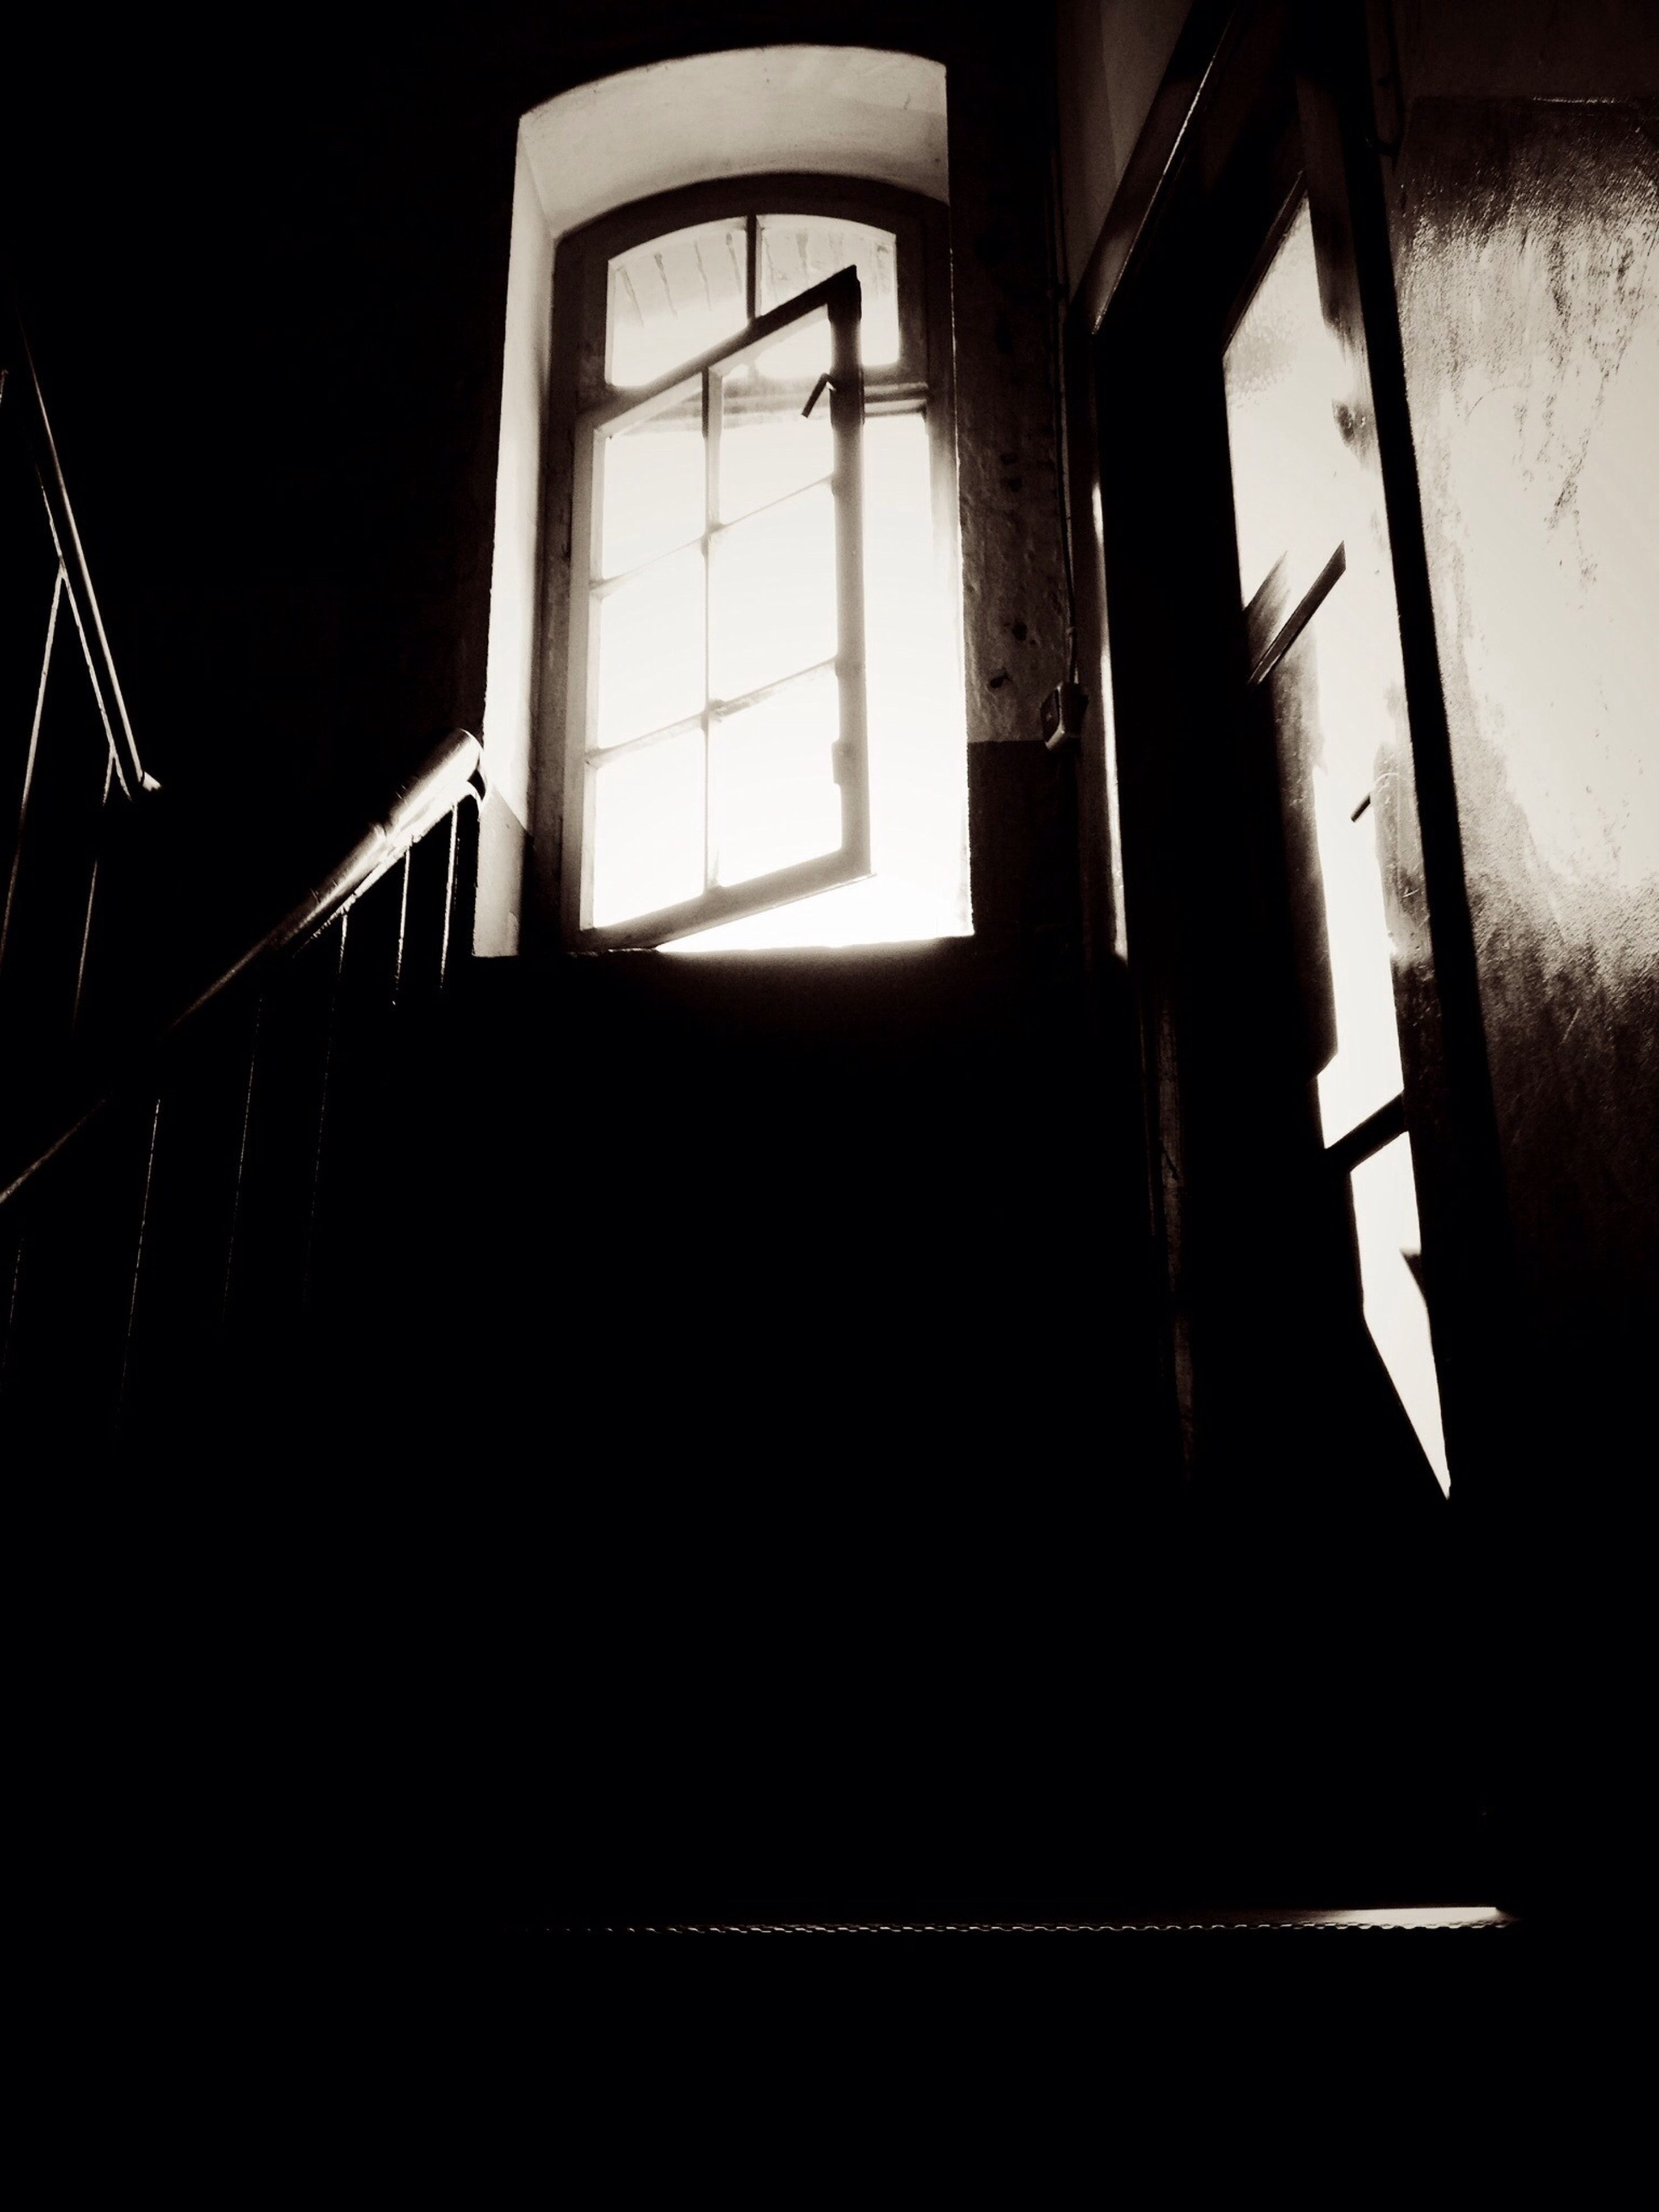 indoors, window, architecture, built structure, empty, sunlight, dark, absence, interior, door, house, glass - material, home interior, abandoned, transparent, no people, day, railing, shadow, open